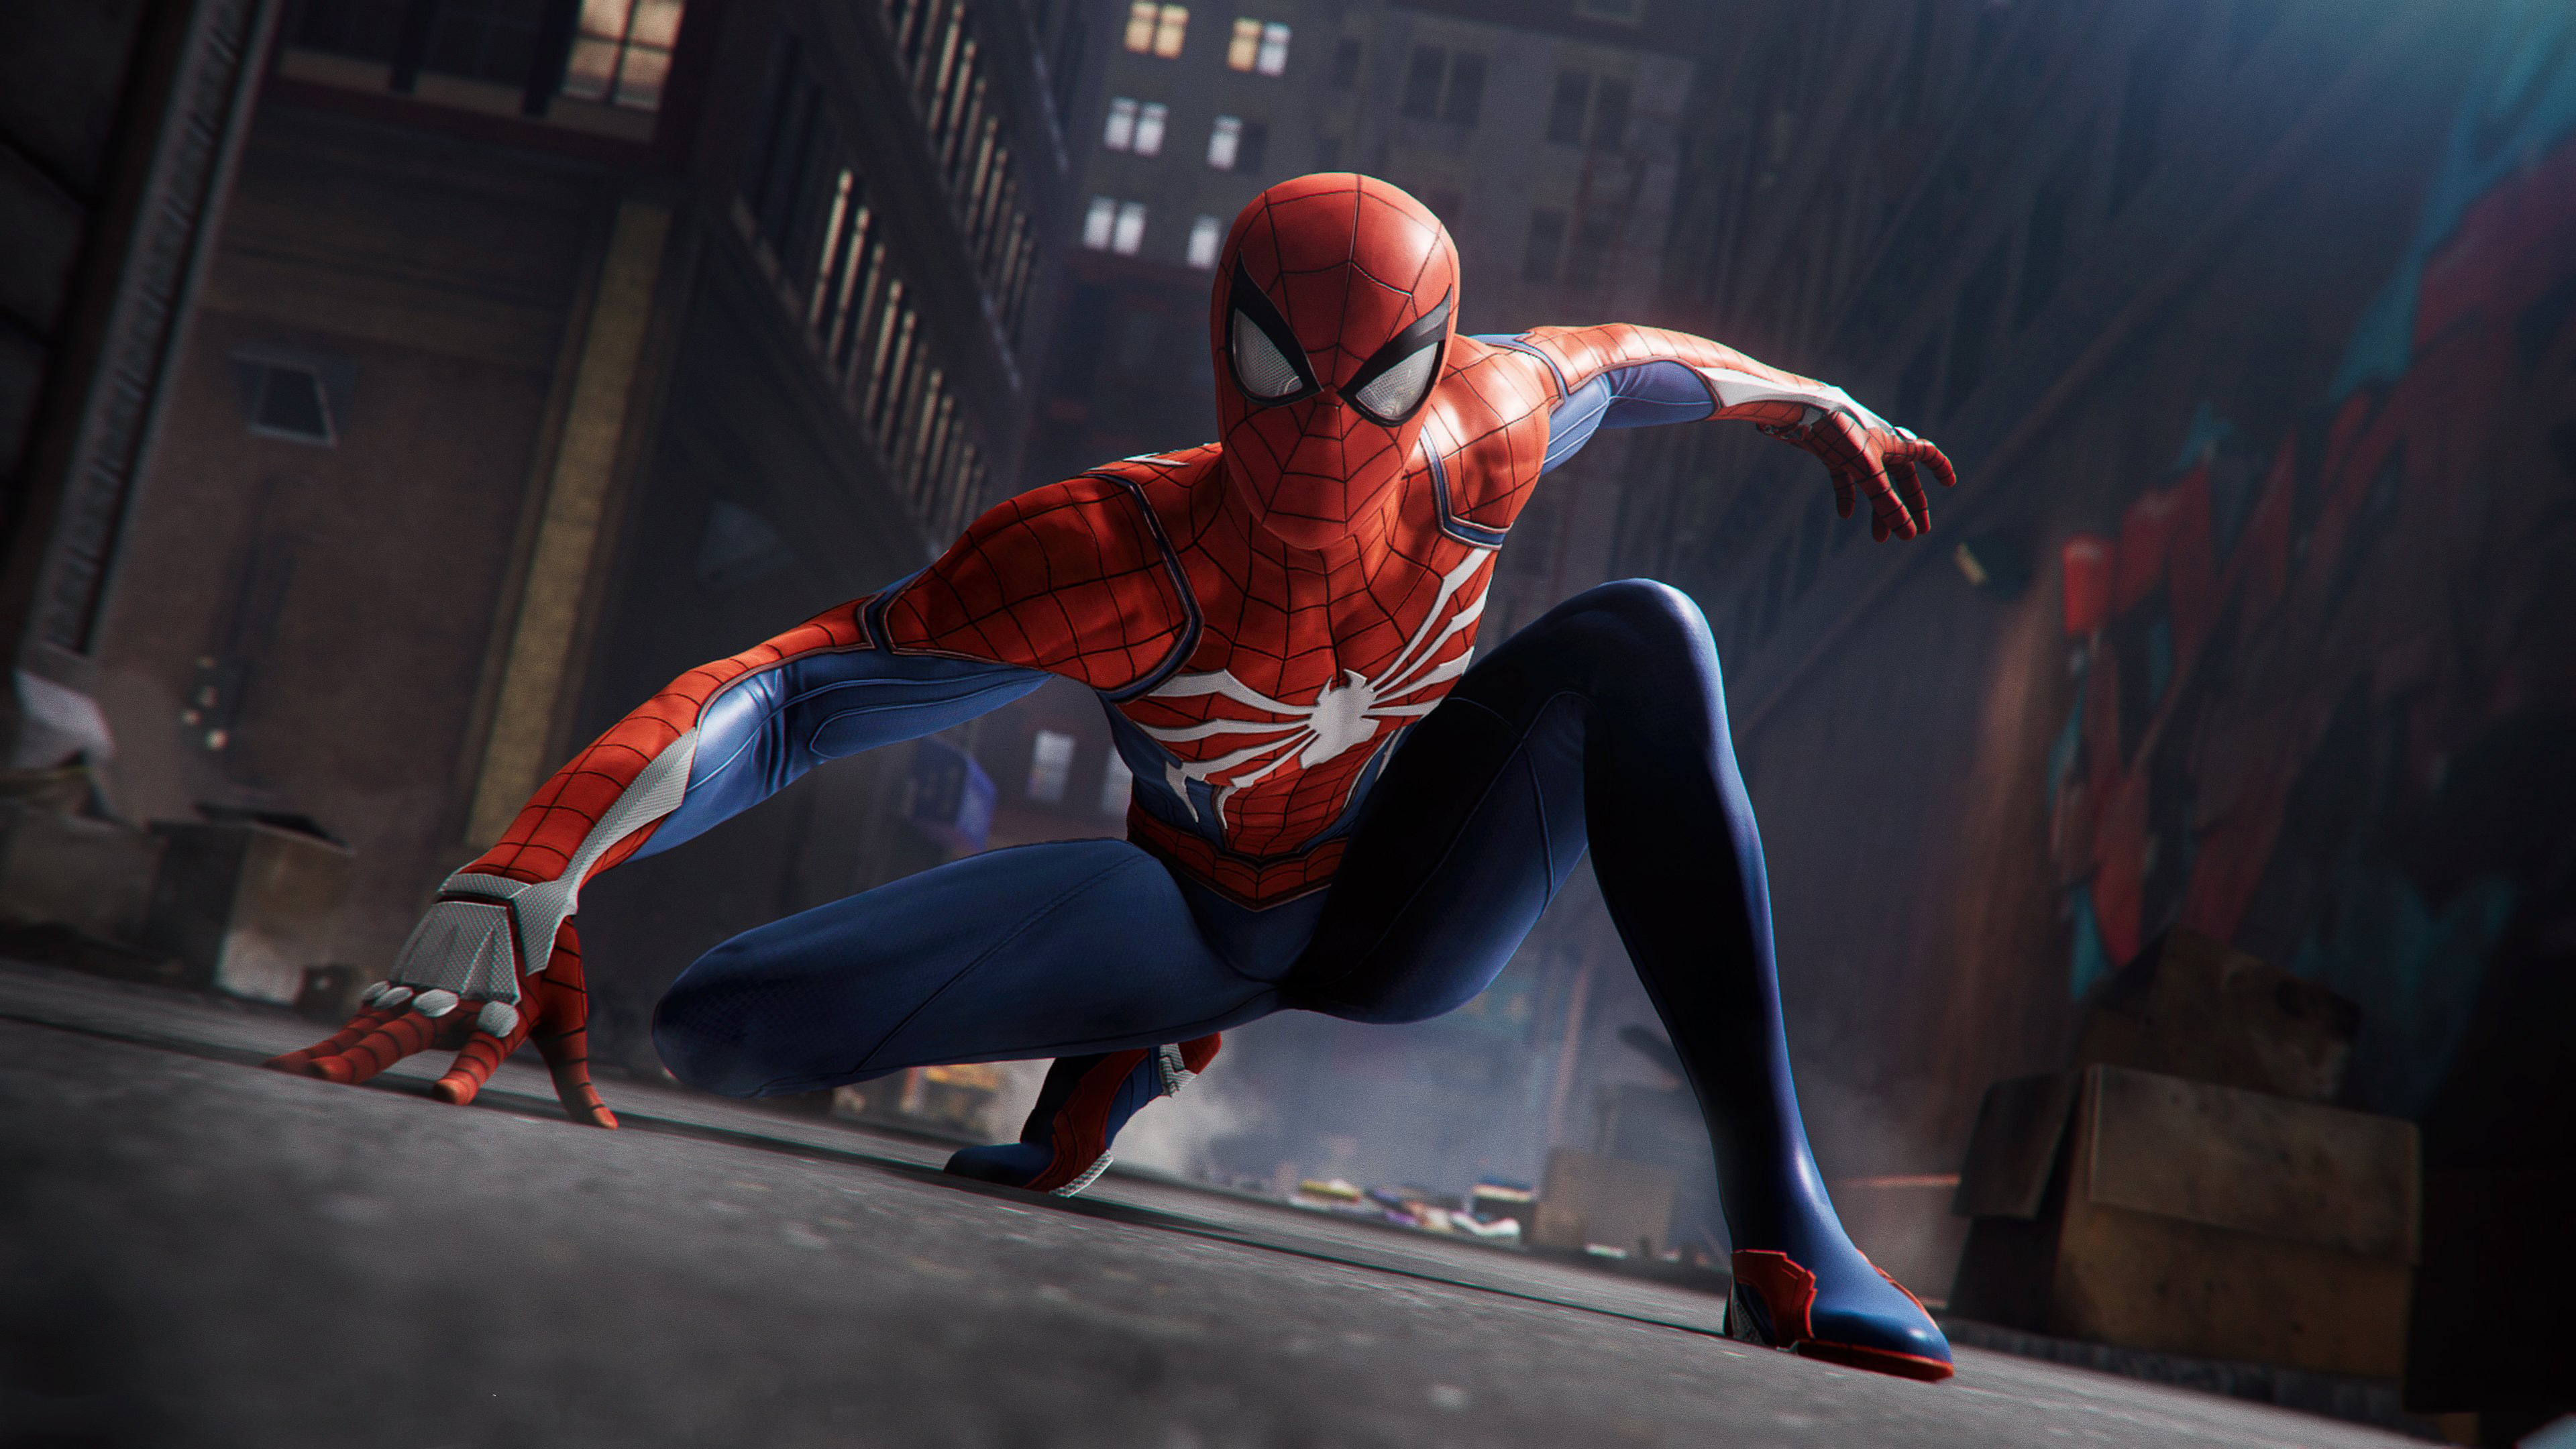 Spider Man Ps4 Game 4k Wallpapers Hd Wallpapers